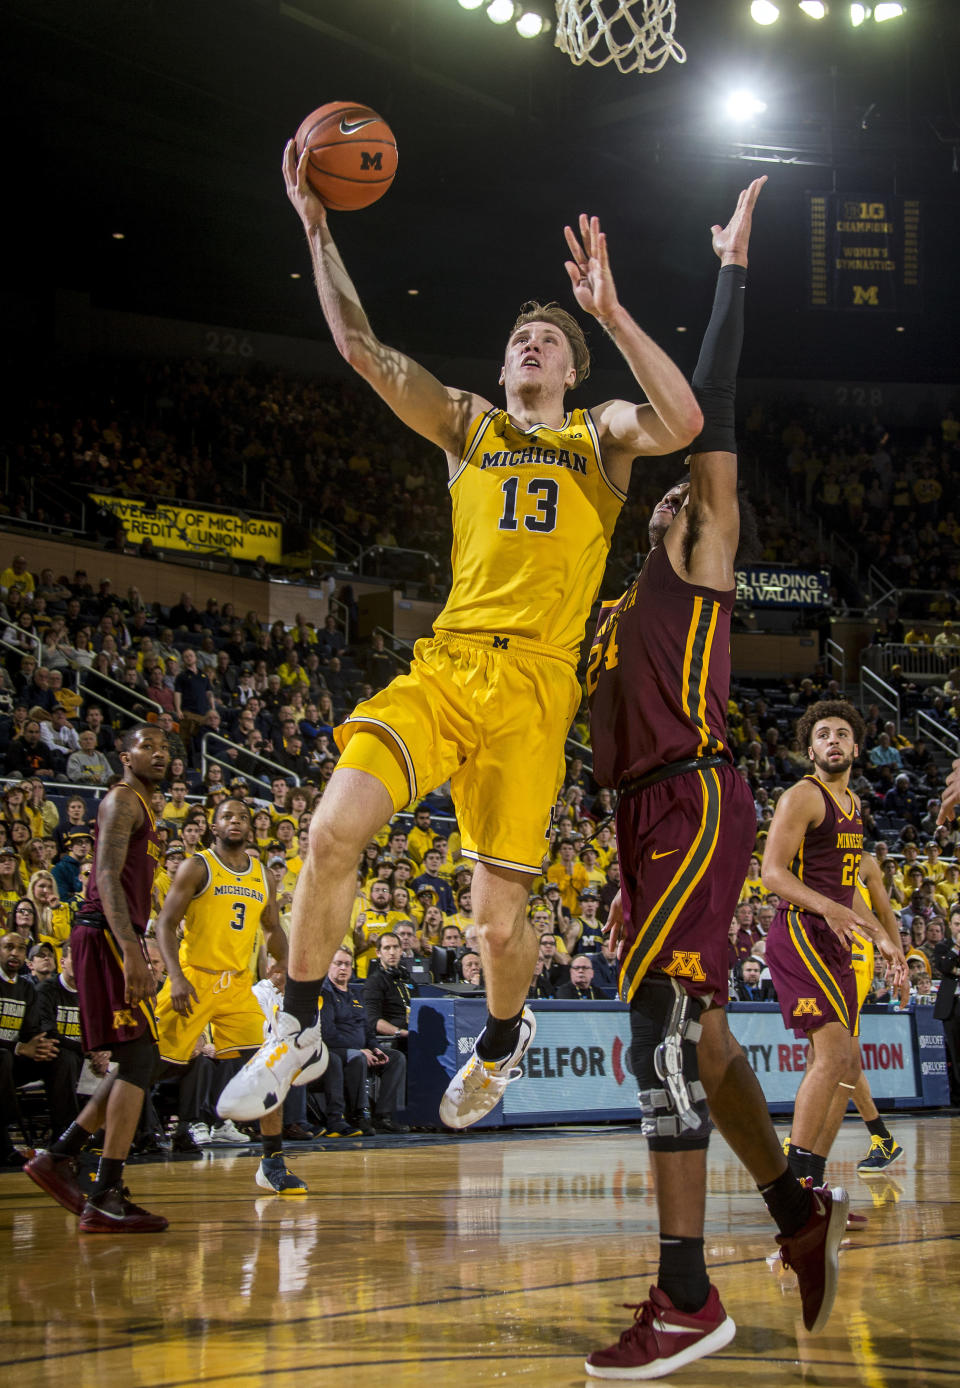 FILE - In this Jan. 22, 2019, file photo, Michigan forward Ignas Brazdeikis (13) goes to the basket, defended by Minnesota forward Eric Curry (24), in the second half of an NCAA college basketball game, in Ann Arbor, Mich. Brazdeikas was Newcomer of the Year in the Big Ten Conference, Tuesday, March 12, 2019. (AP Photo/Tony Ding, File)